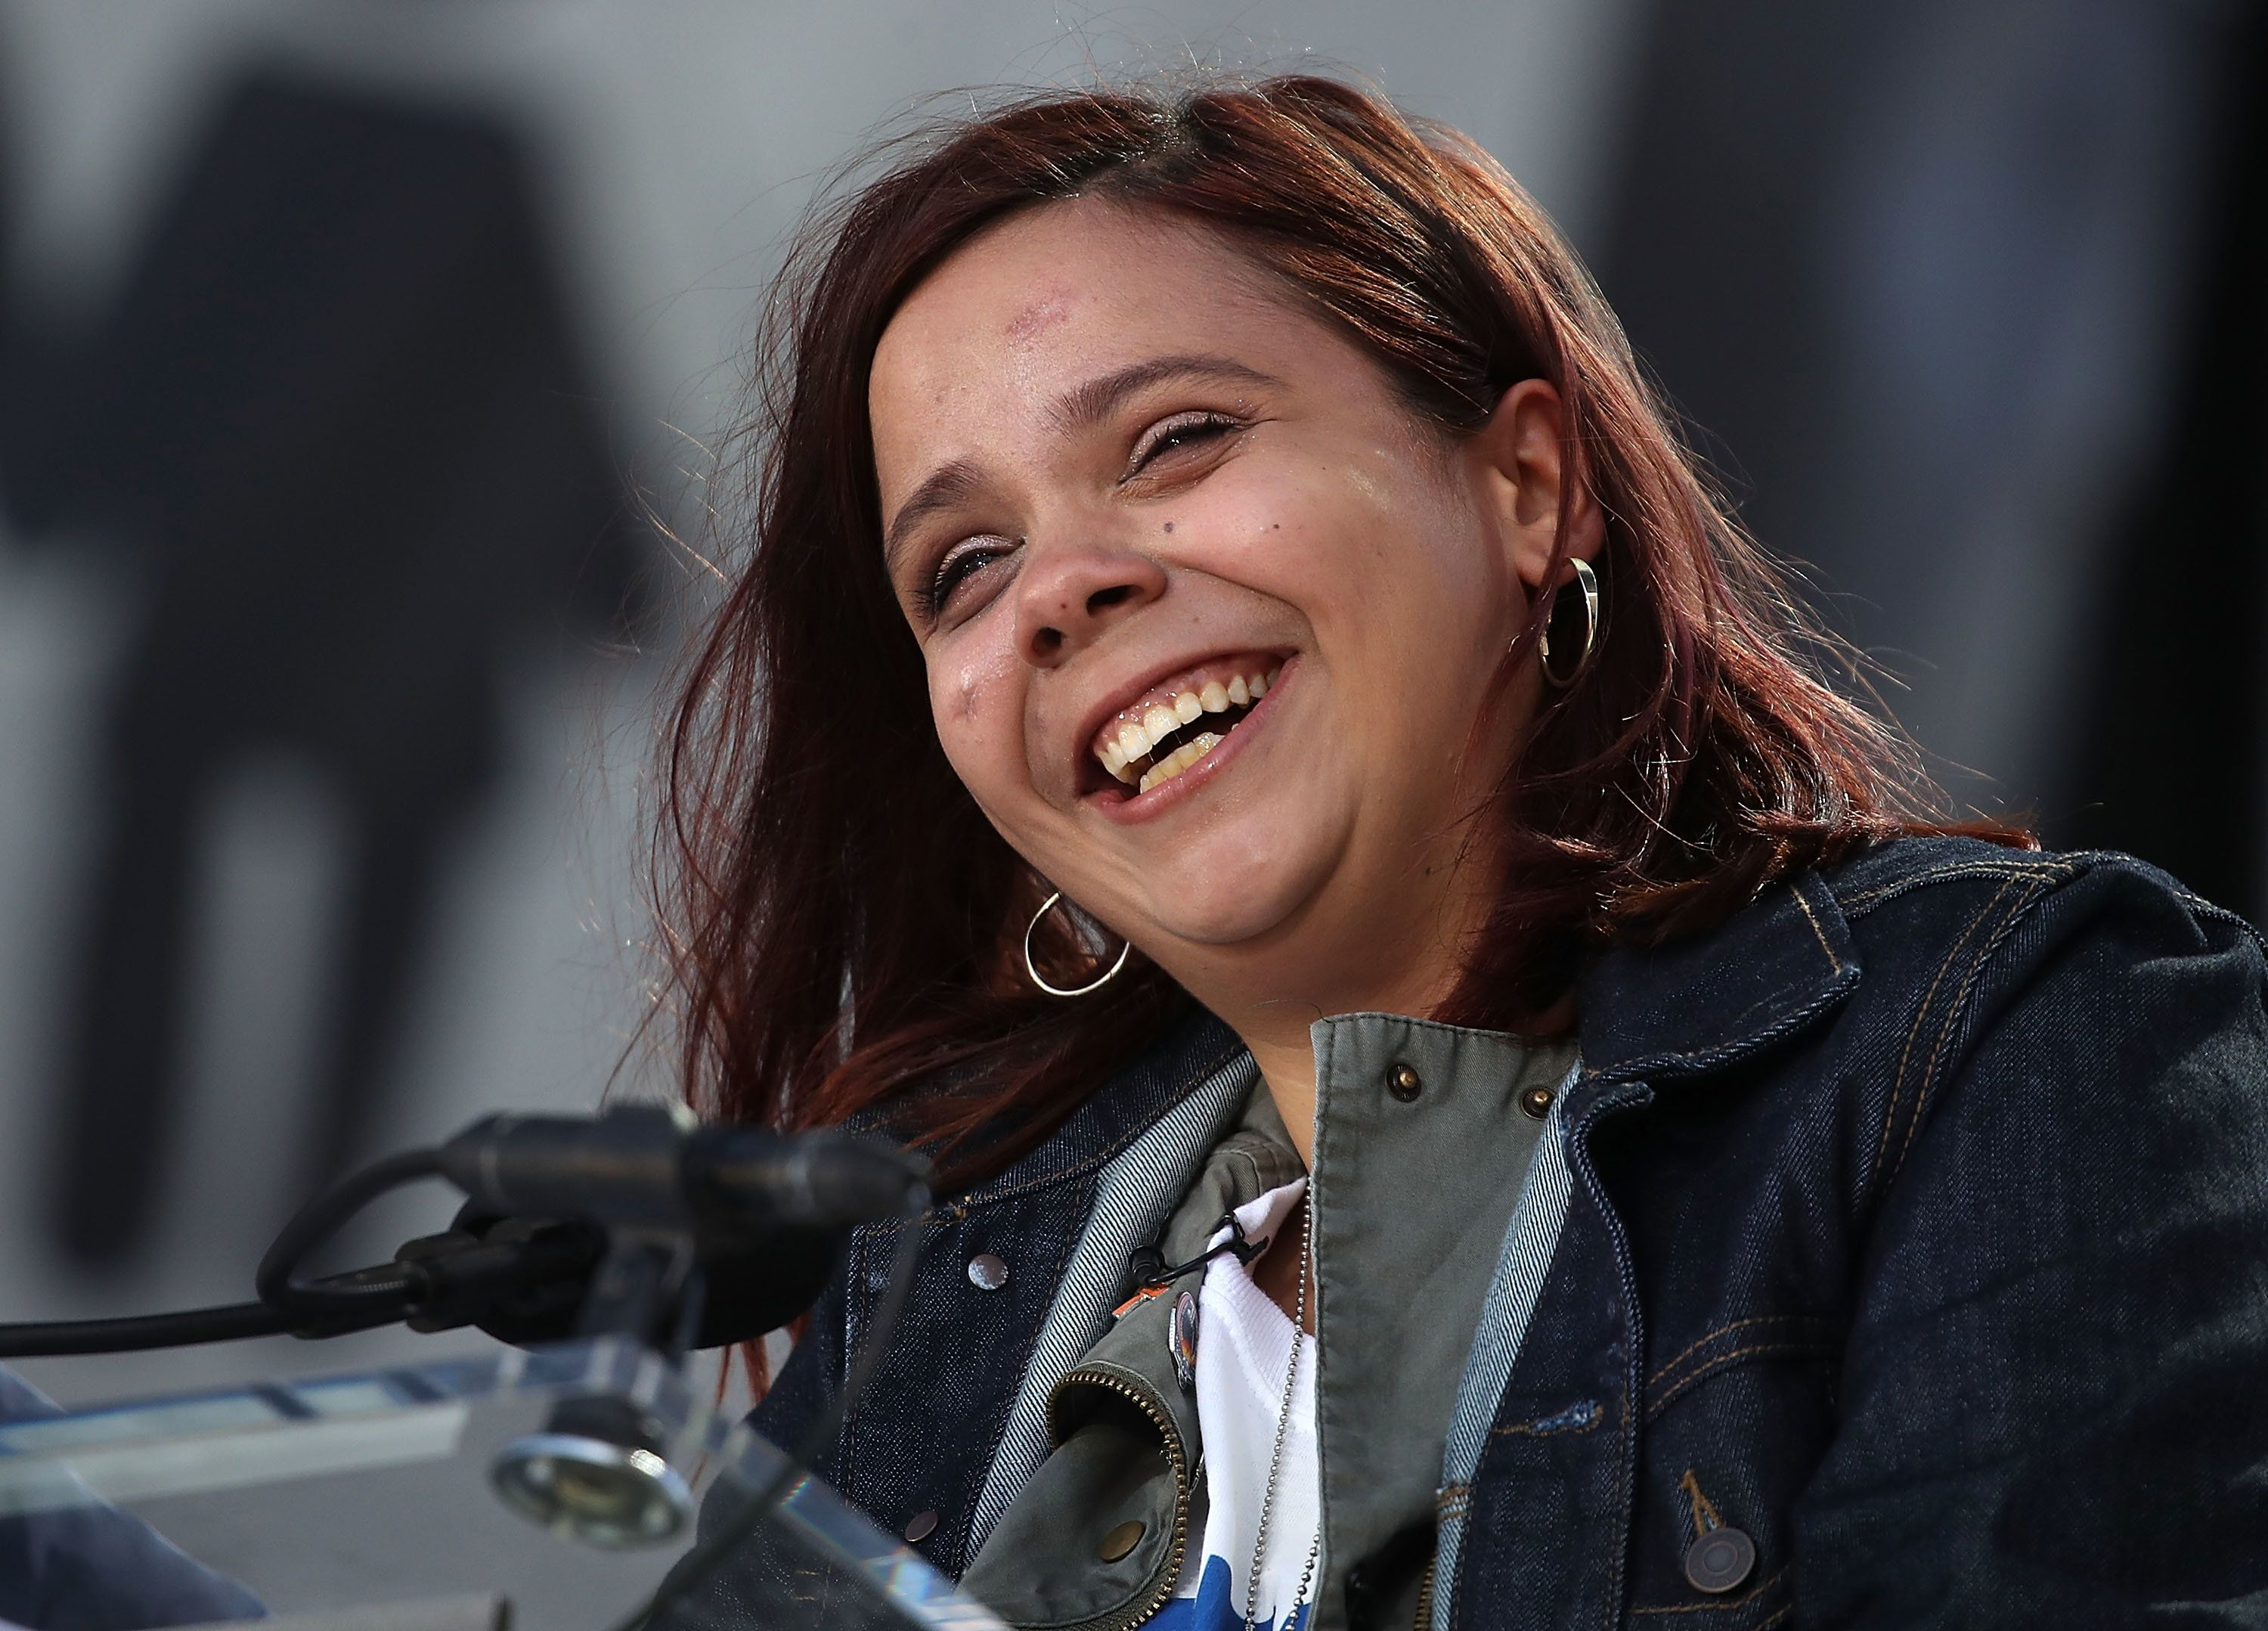 Fuentes speaks during the march for our life rally on March 24 in Washington